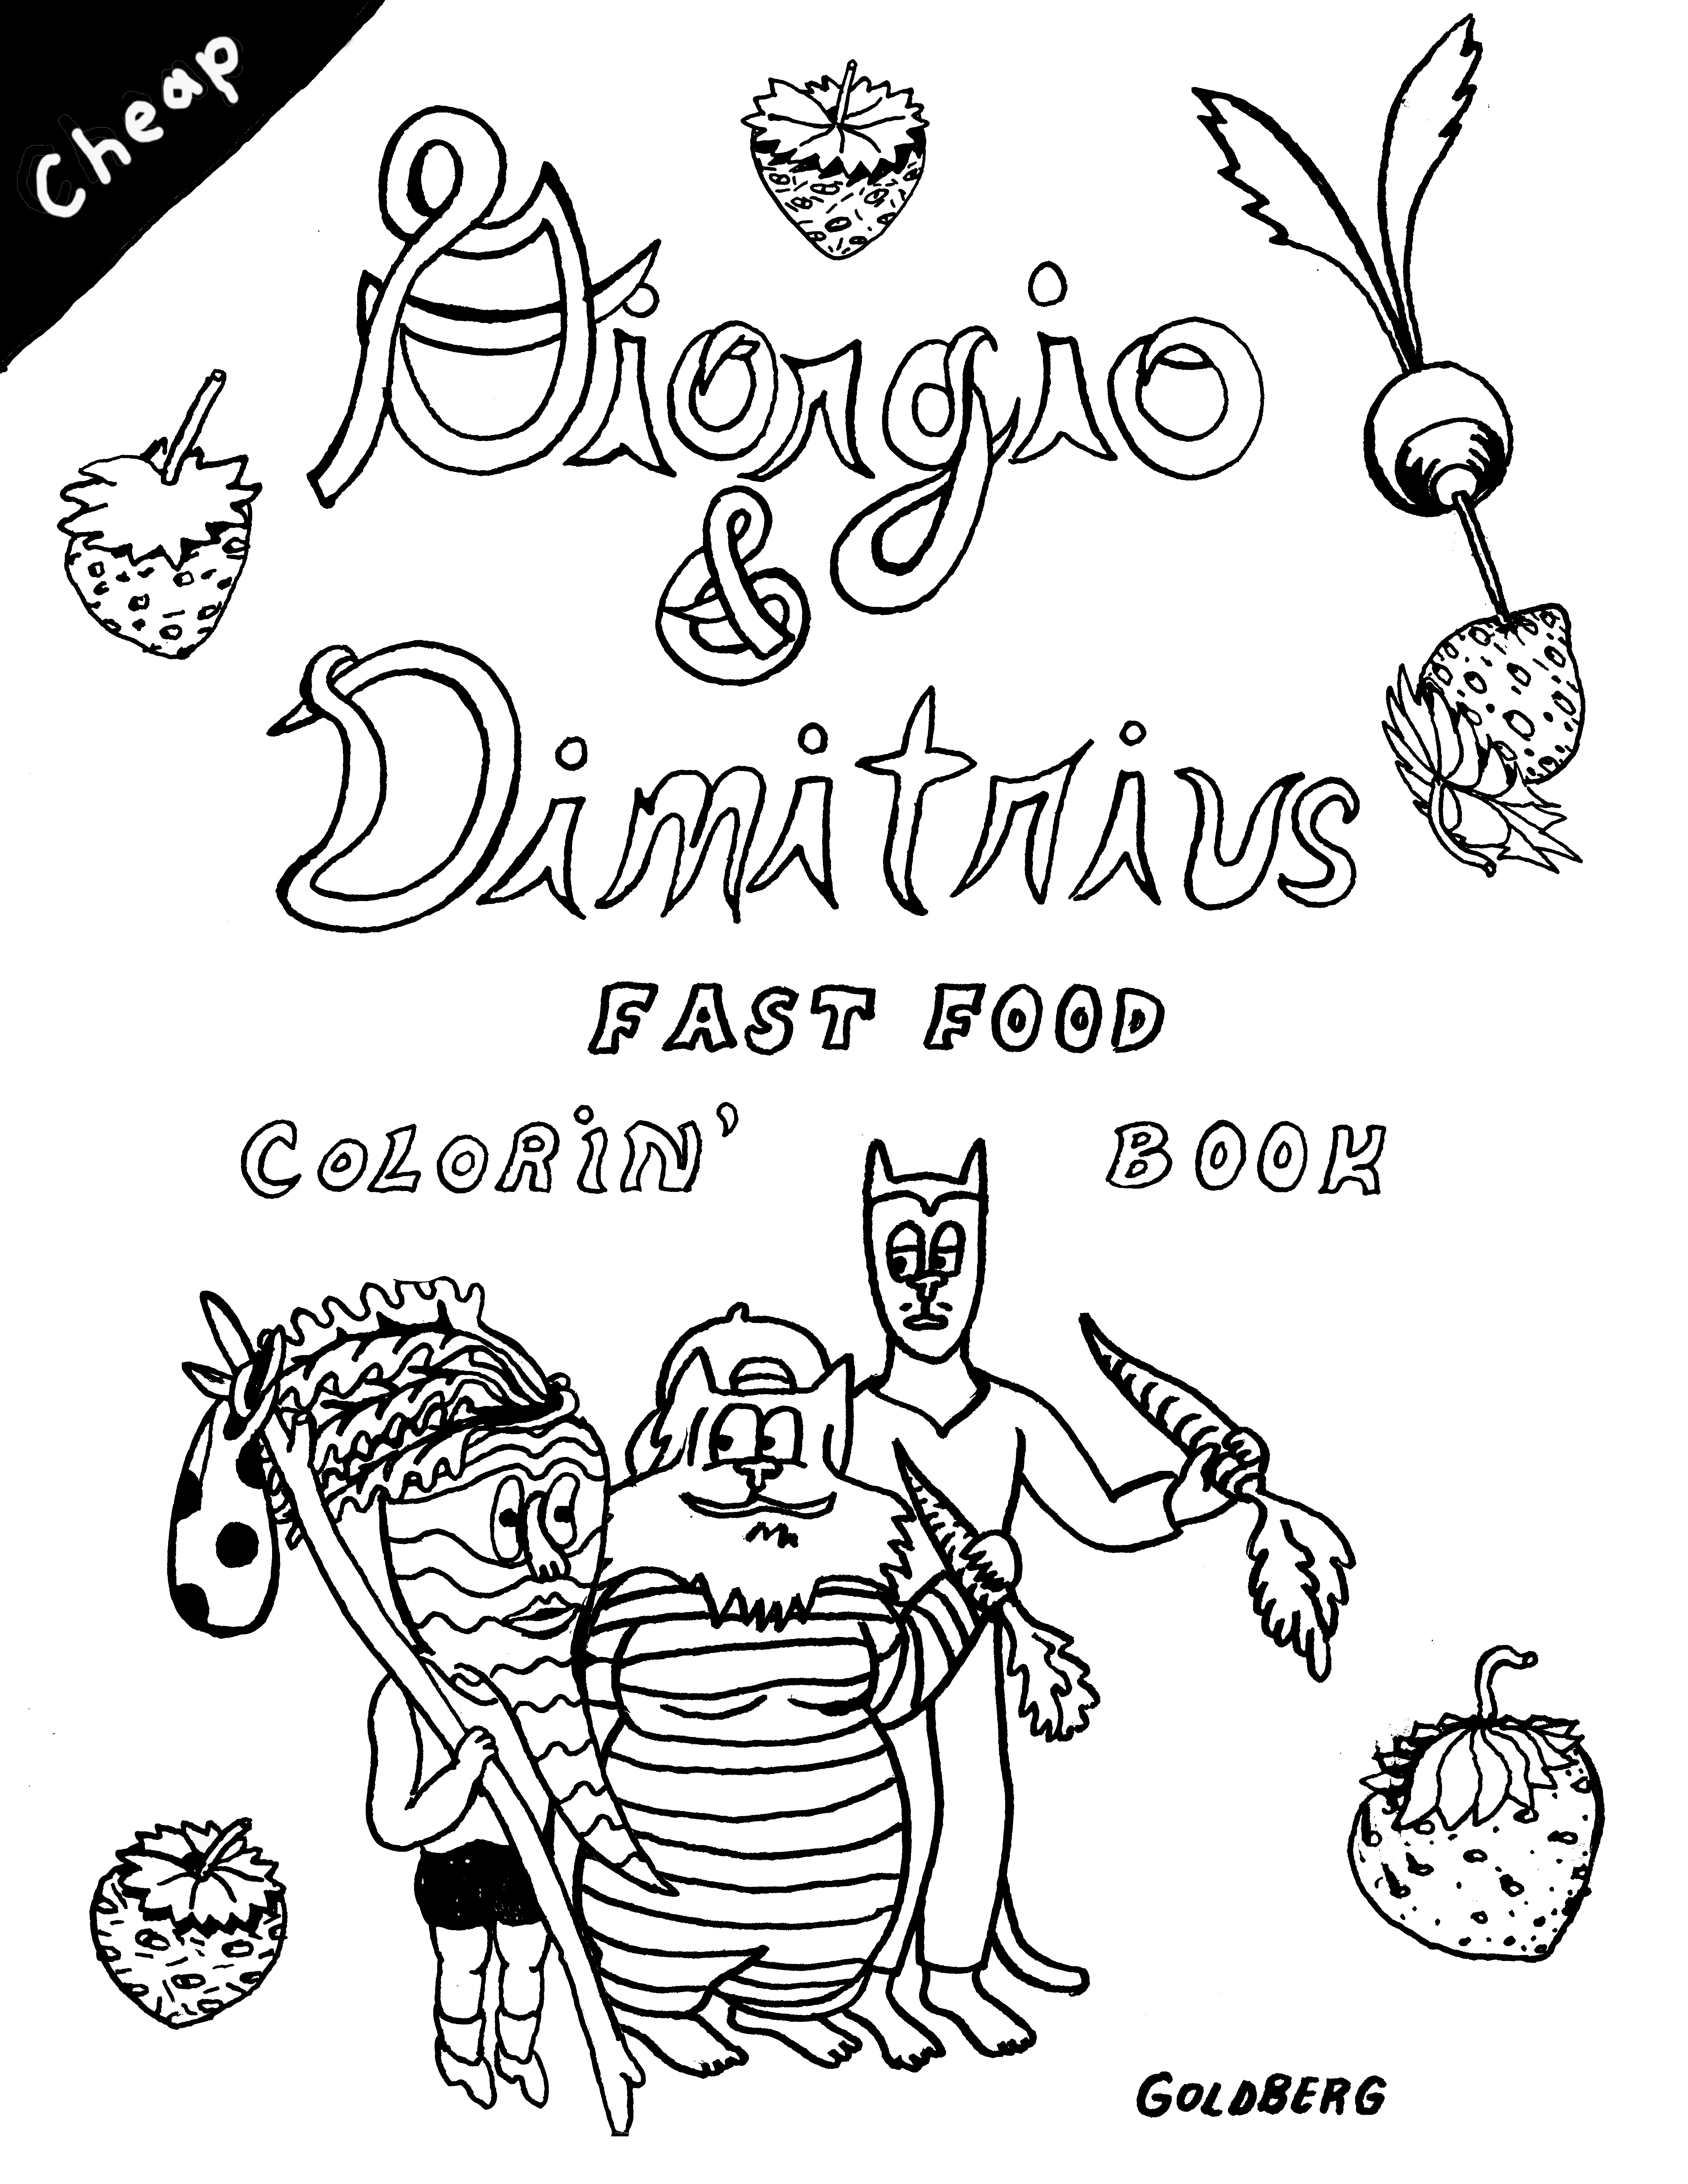 Giorgio & Dimitrius Fast Food Coloring Book · A Malfunction of Time ...